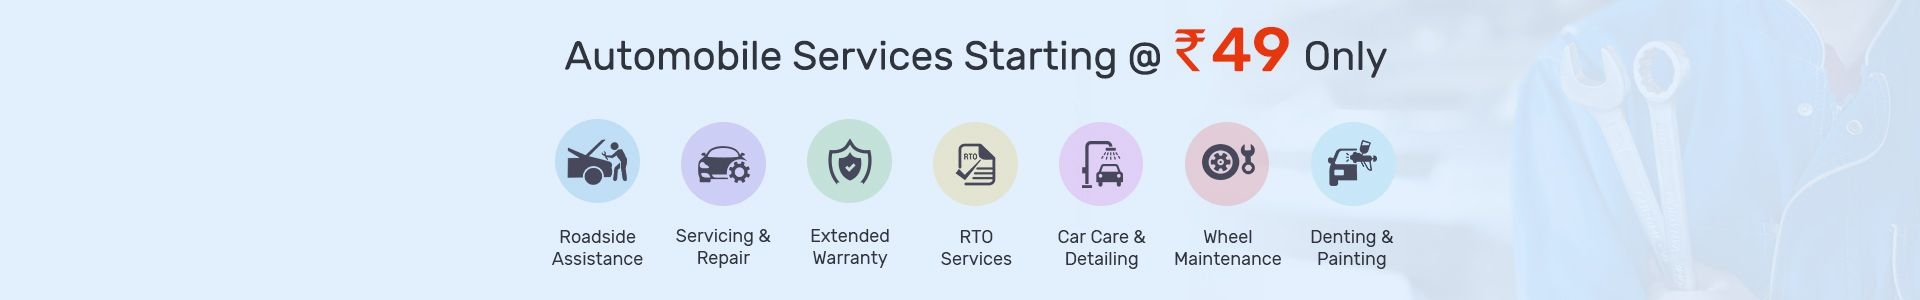 New-Year-Sale_Automobile-Services